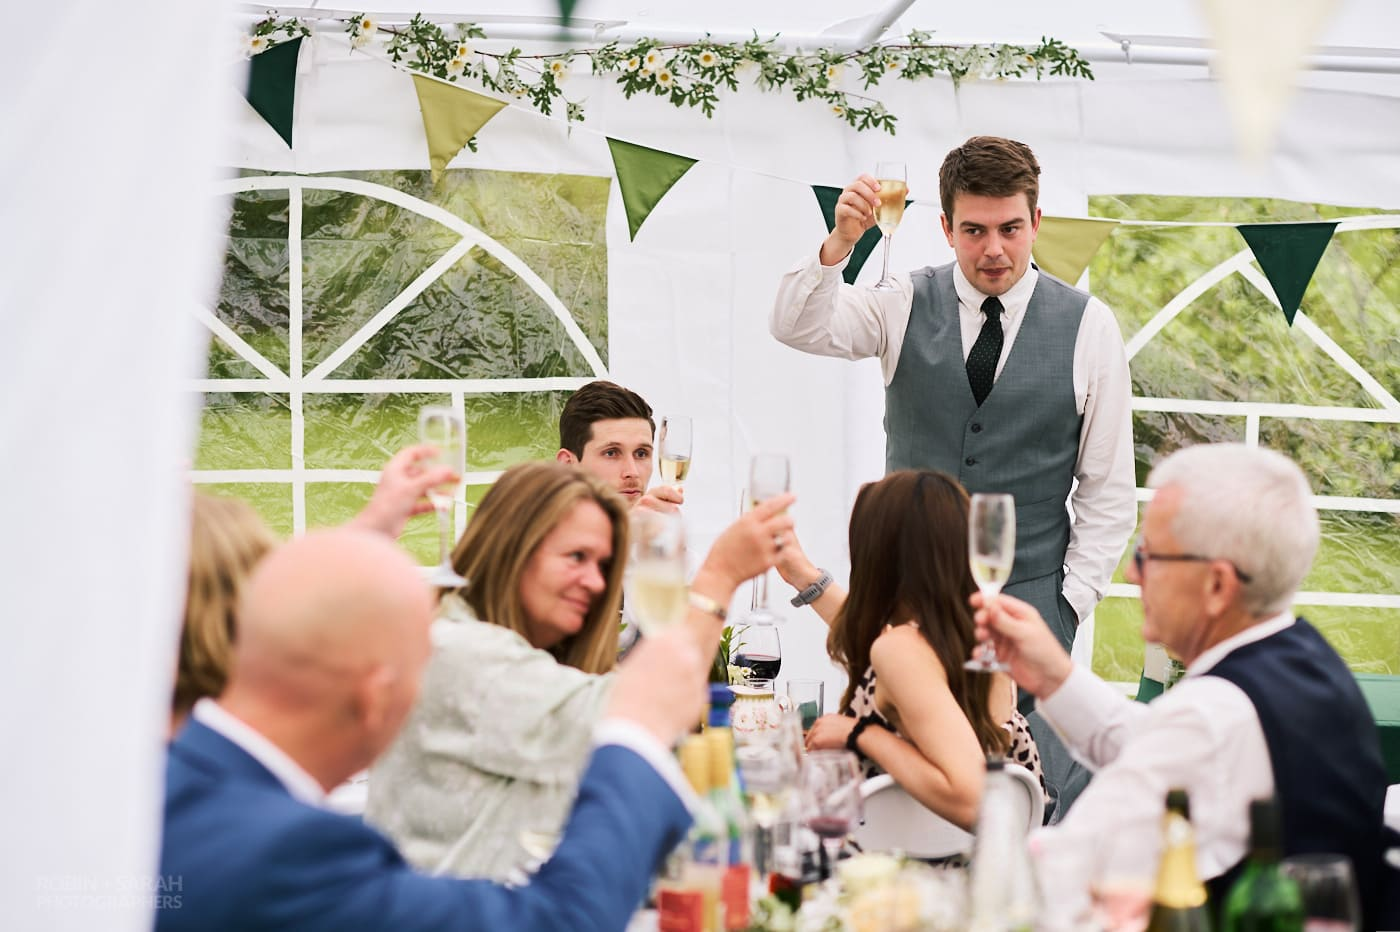 Best main raises glass to toast during wedding speeches in small garden marquee